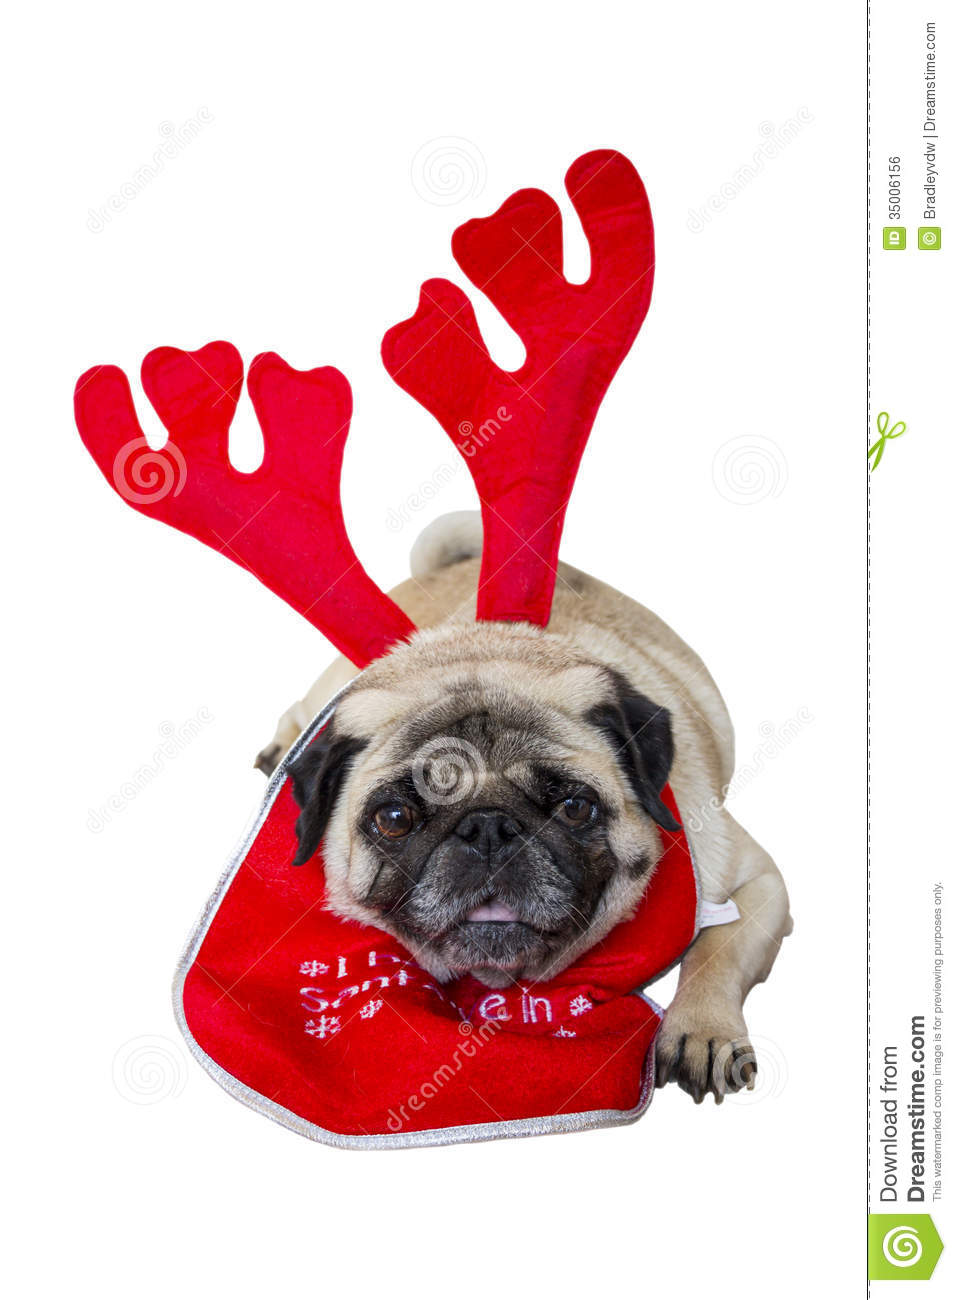 Beige Pug Wearing Christmas Attire 1 Royalty Free Stock Image - Image ...